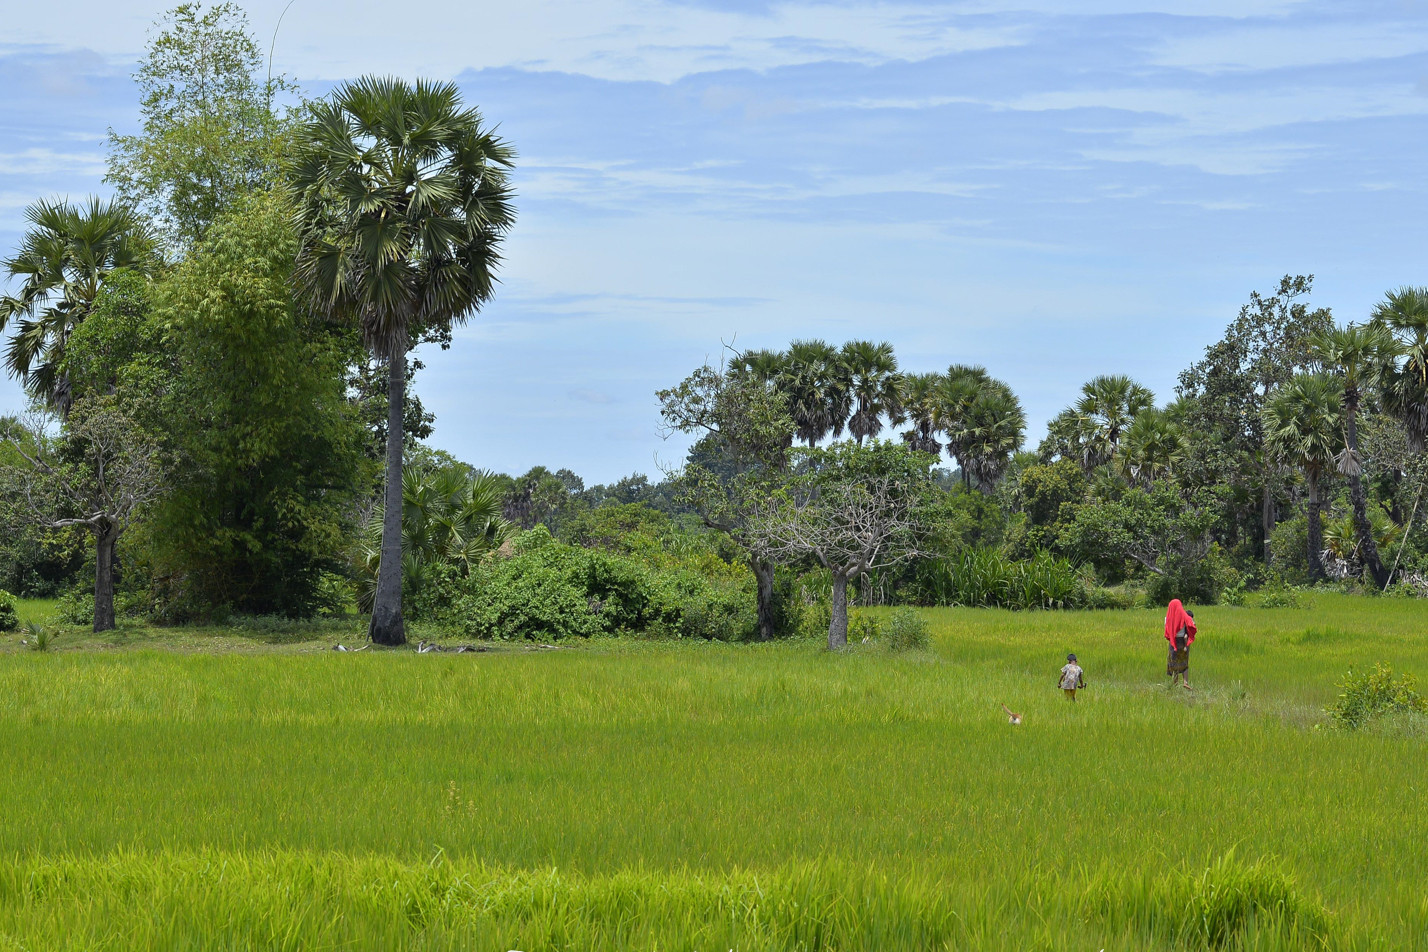 Cambodia photo tours landscape rice field